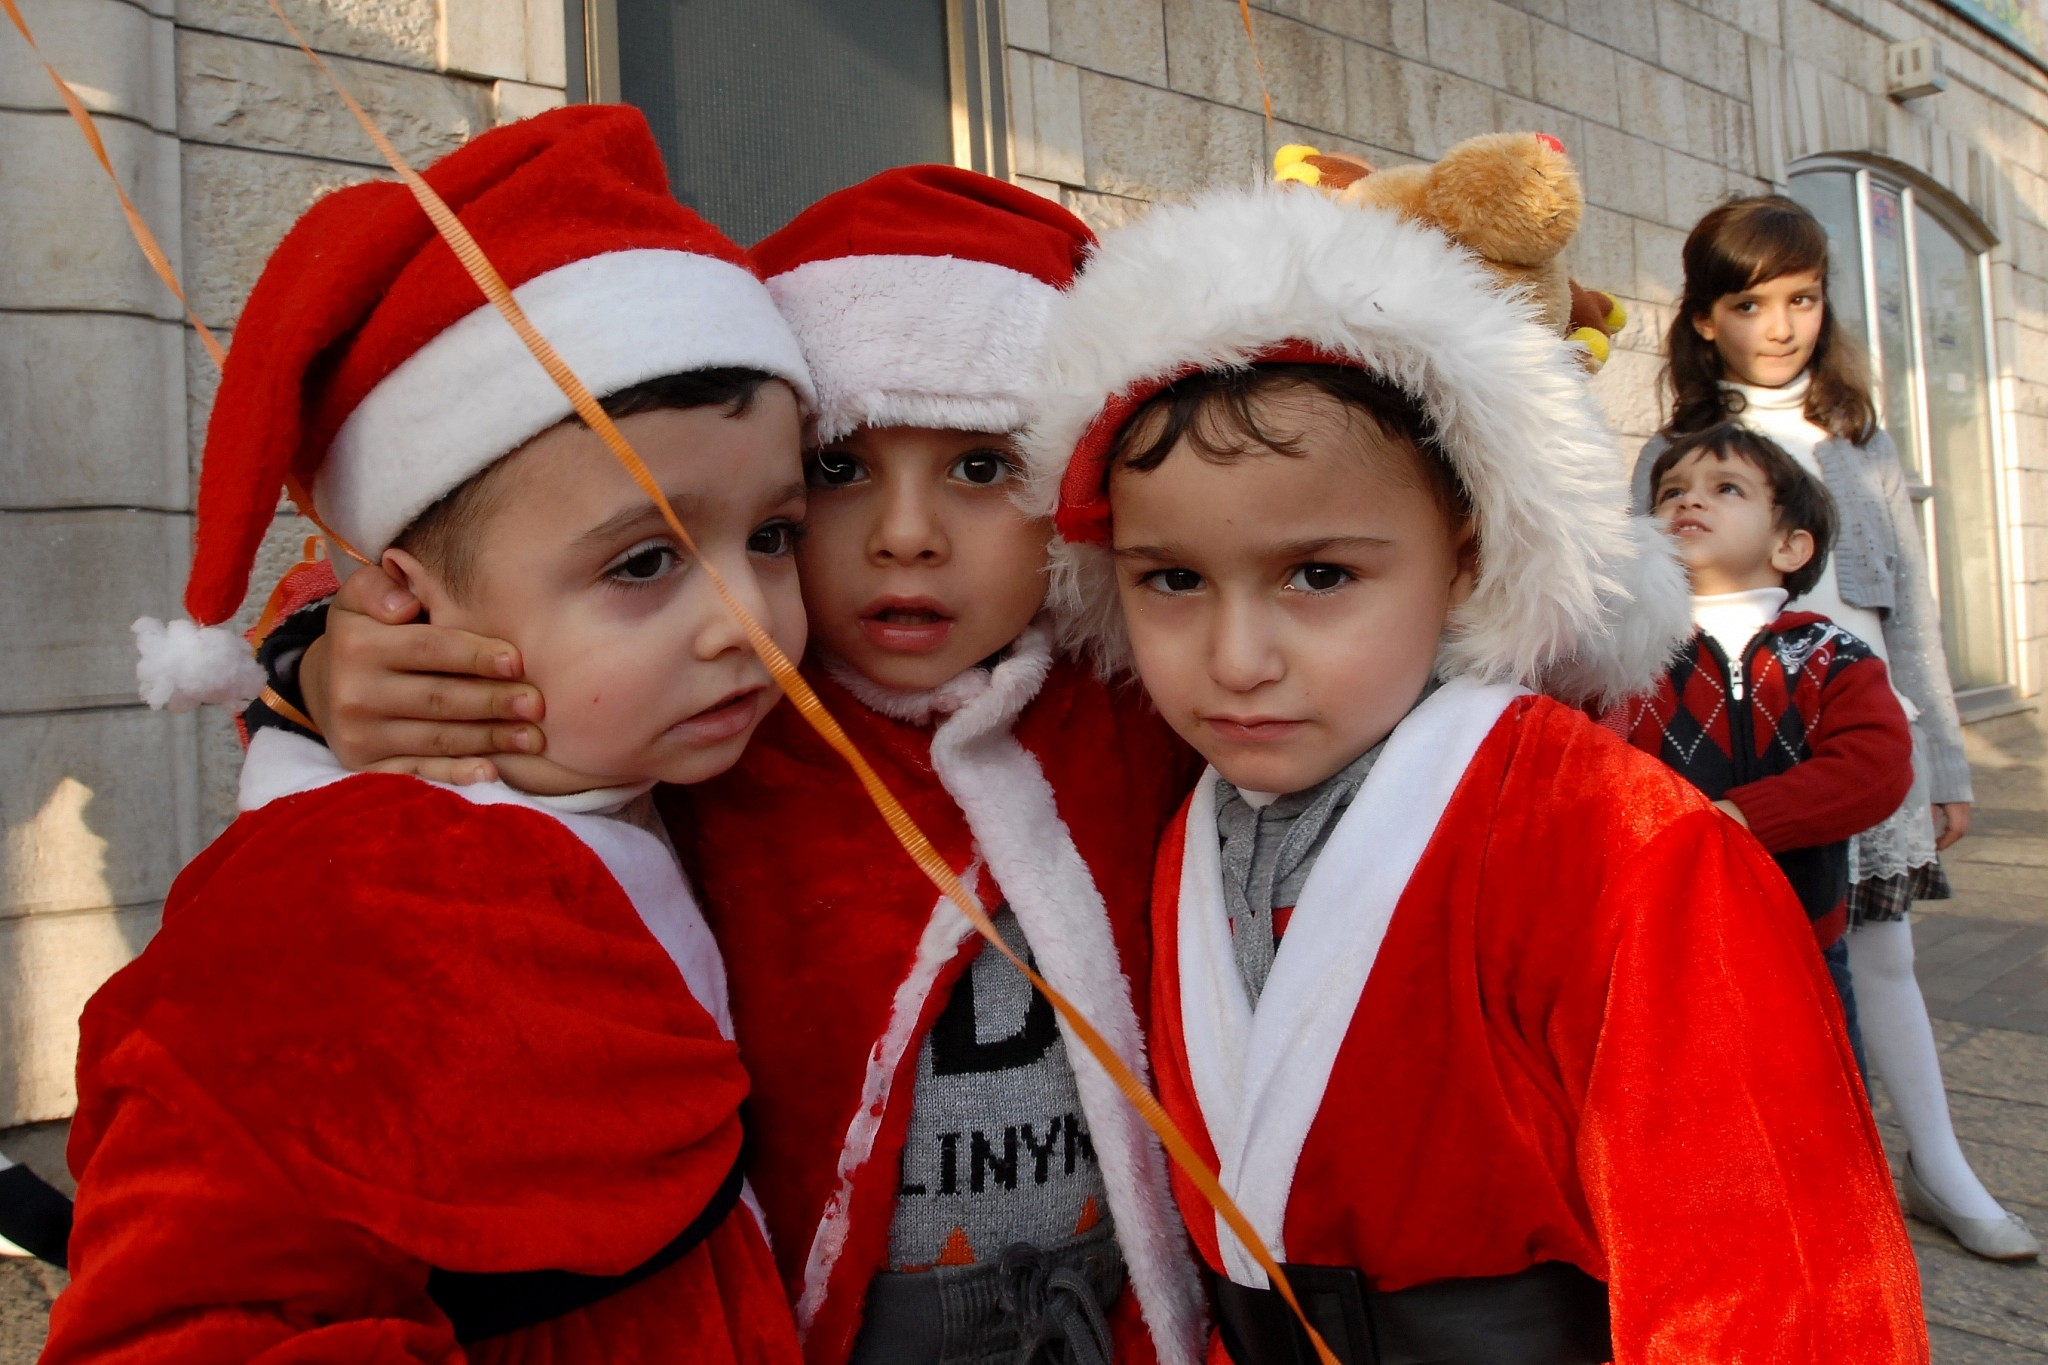 Nazareth cuts back Christmas celebrations to protest Trump's Jerusalem move